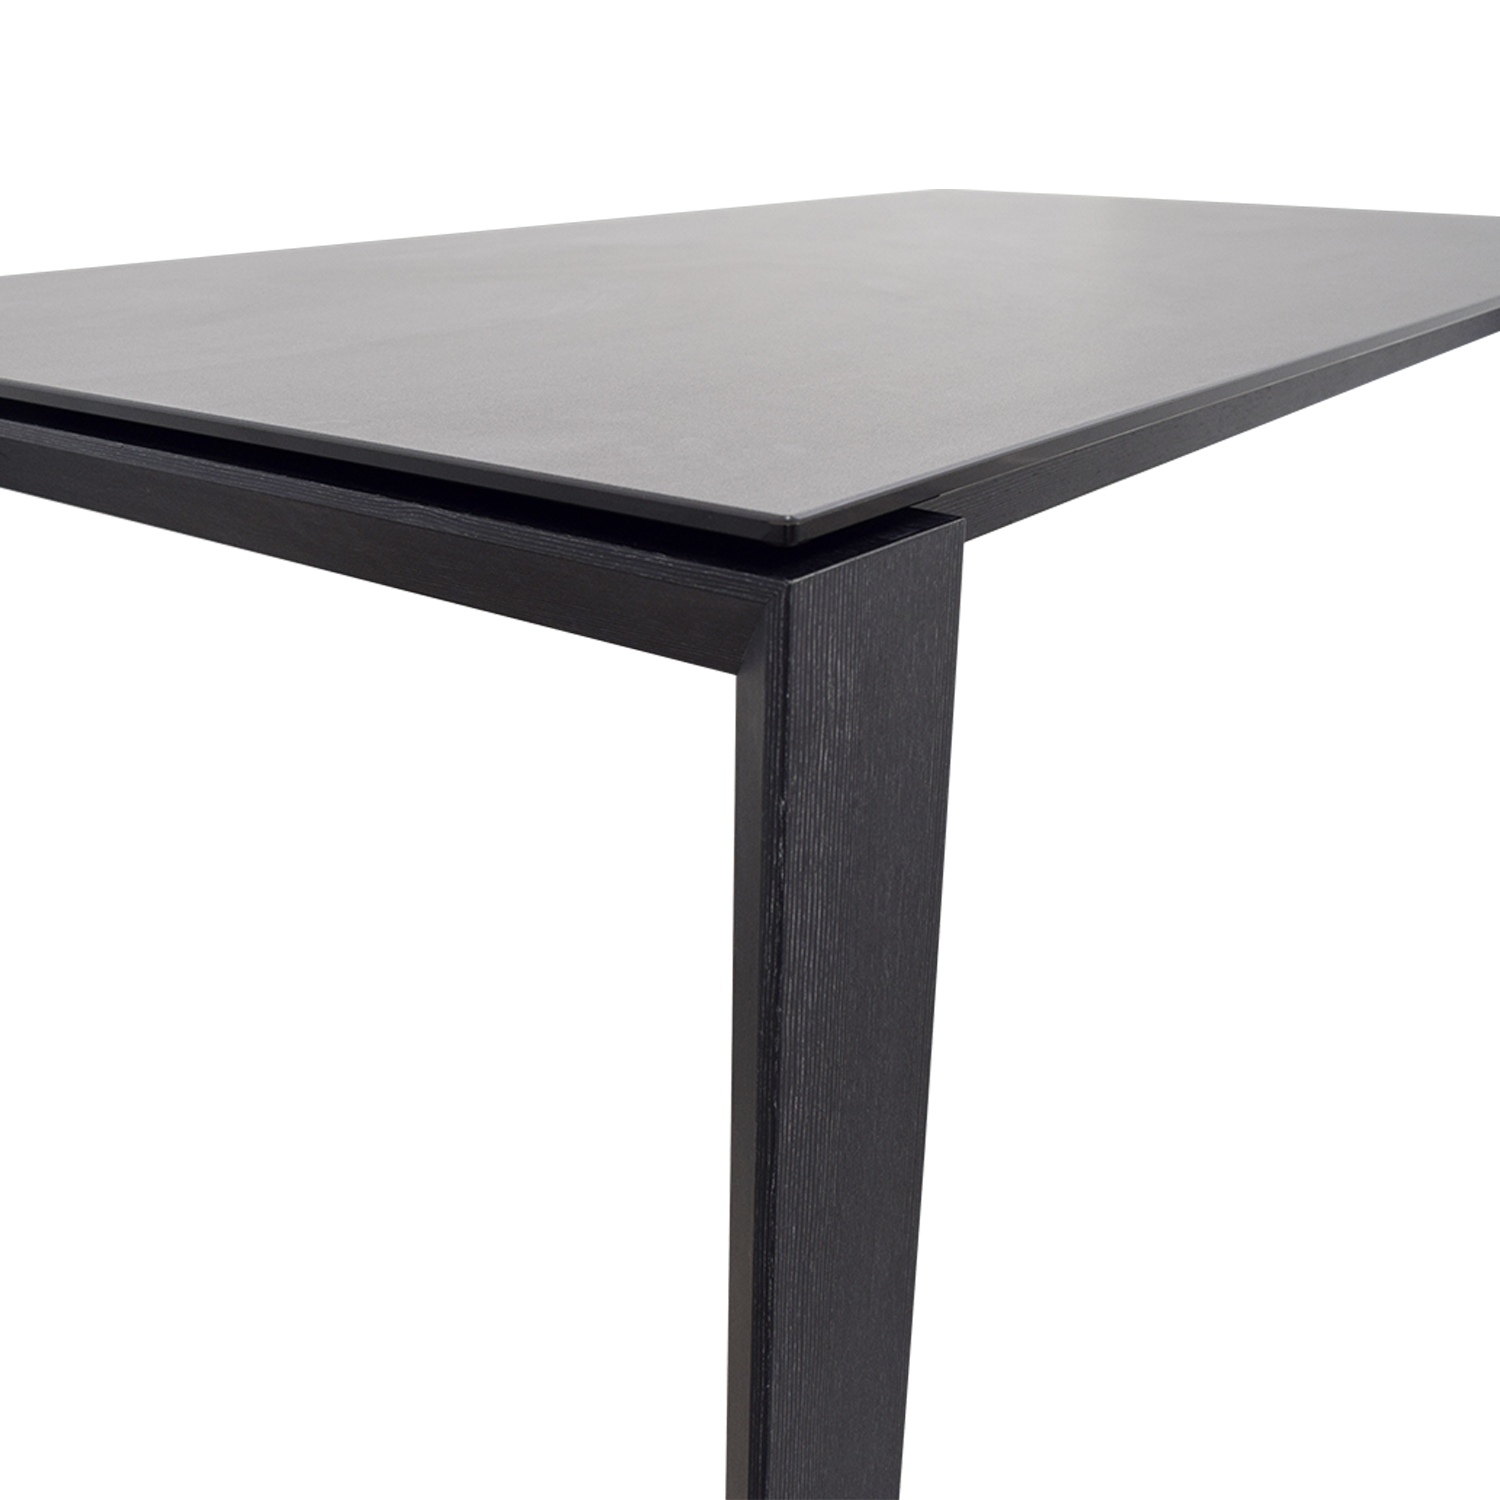 34% OFF Calligaris Calligaris Omina XL Extension Dining Table